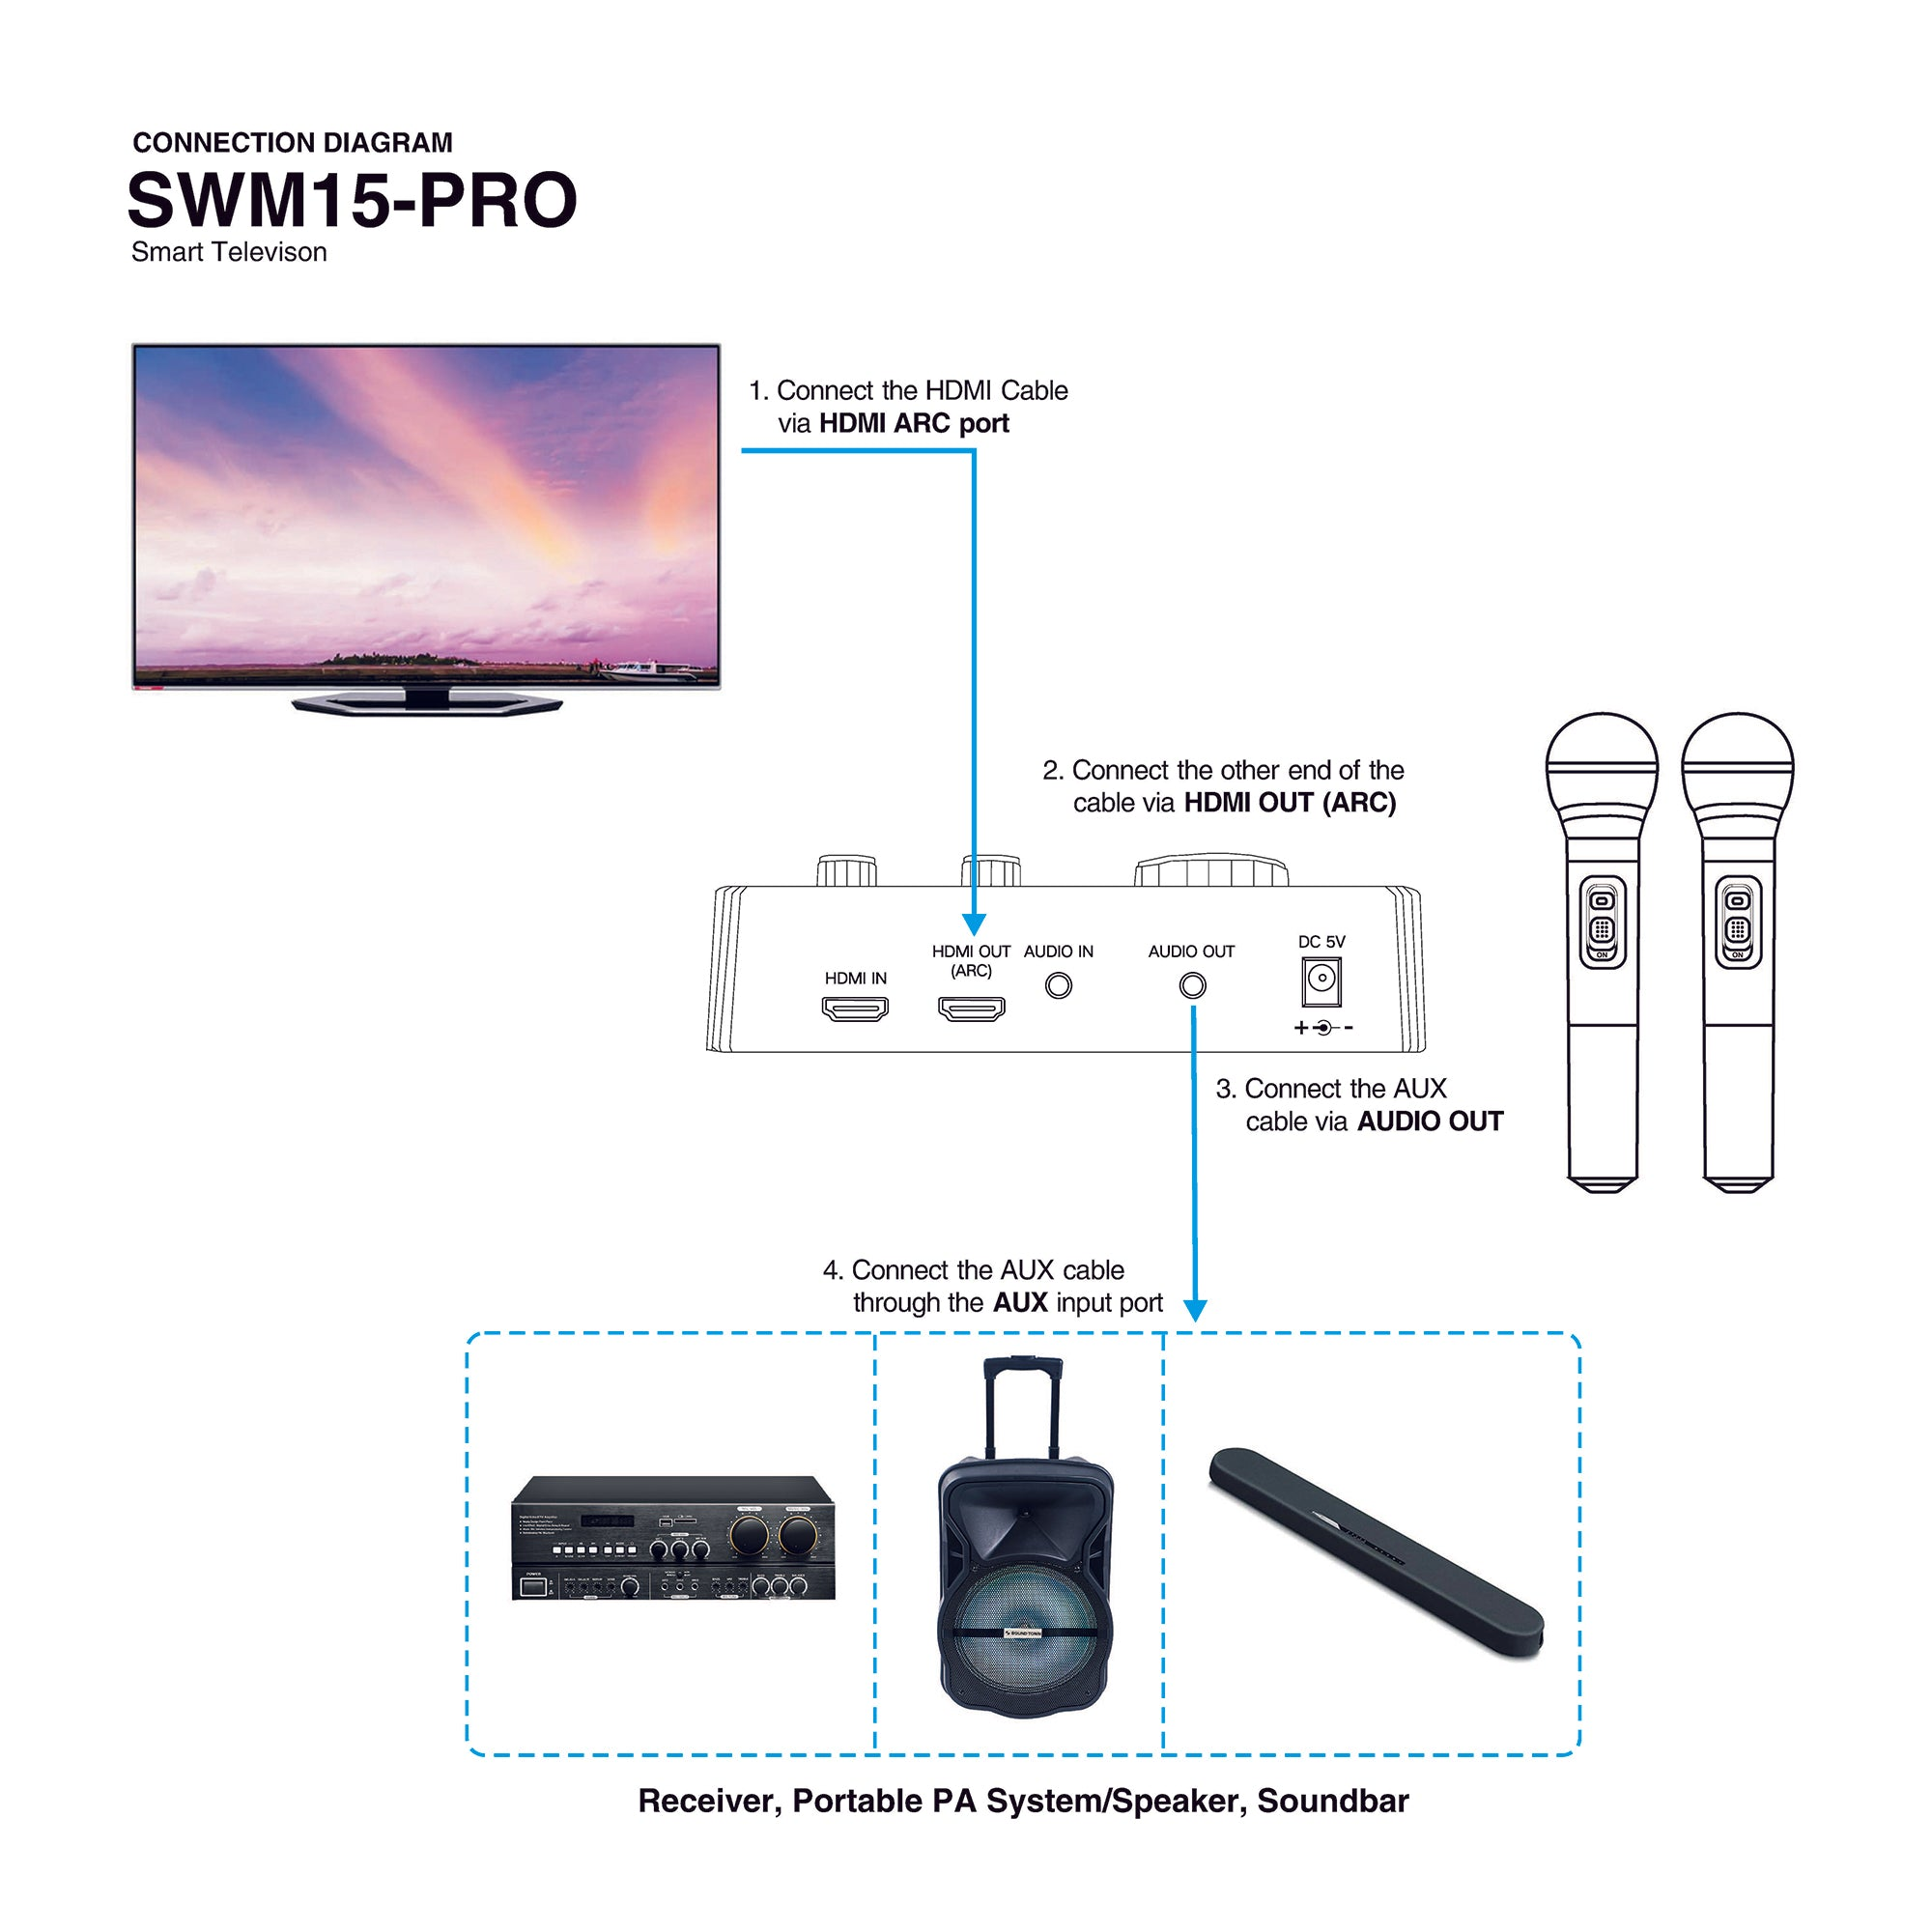 swm15 pro 16 channels wireless karaoke mixer system with bluetoothsound town swm15 pro karaoke microphone system connection diagram hdmi arc smart tv television how